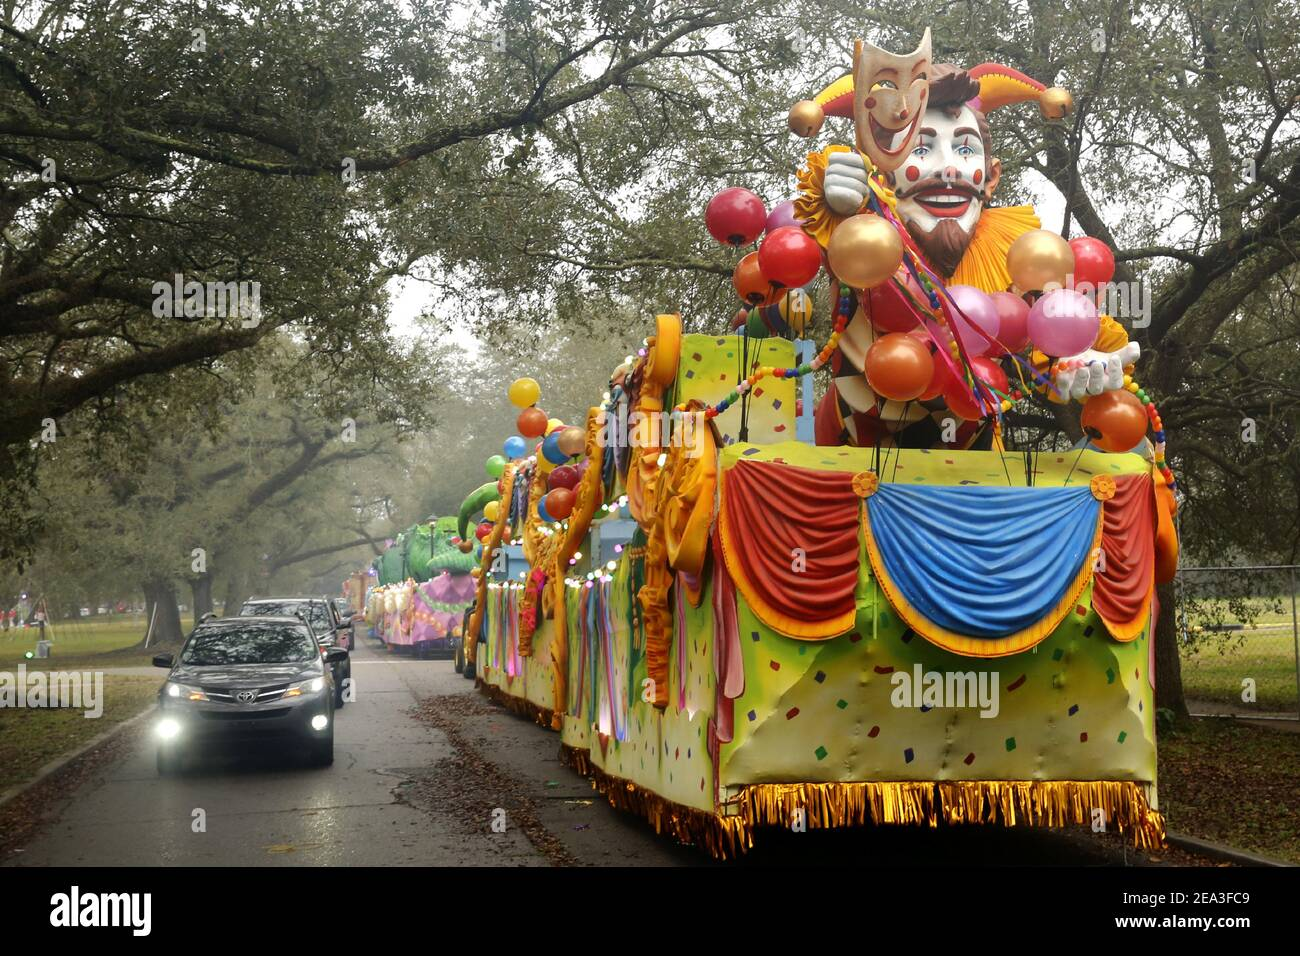 New Orleans, USA. 7th Feb, 2021. People in their vehicles take part in Floats in the Oaks event in New Orleans, Louisiana, the United States, on Feb. 6, 2021. As part of Mardi Gras celebrations, Floats in the Oaks event is held here from Feb. 4 to Feb. 14. Due to the COVID-19 pandemic, people can only participate in a parade-type event by viewing stationery floats from their vehicles this year. Credit: Lan Wei/Xinhua/Alamy Live News Stock Photo